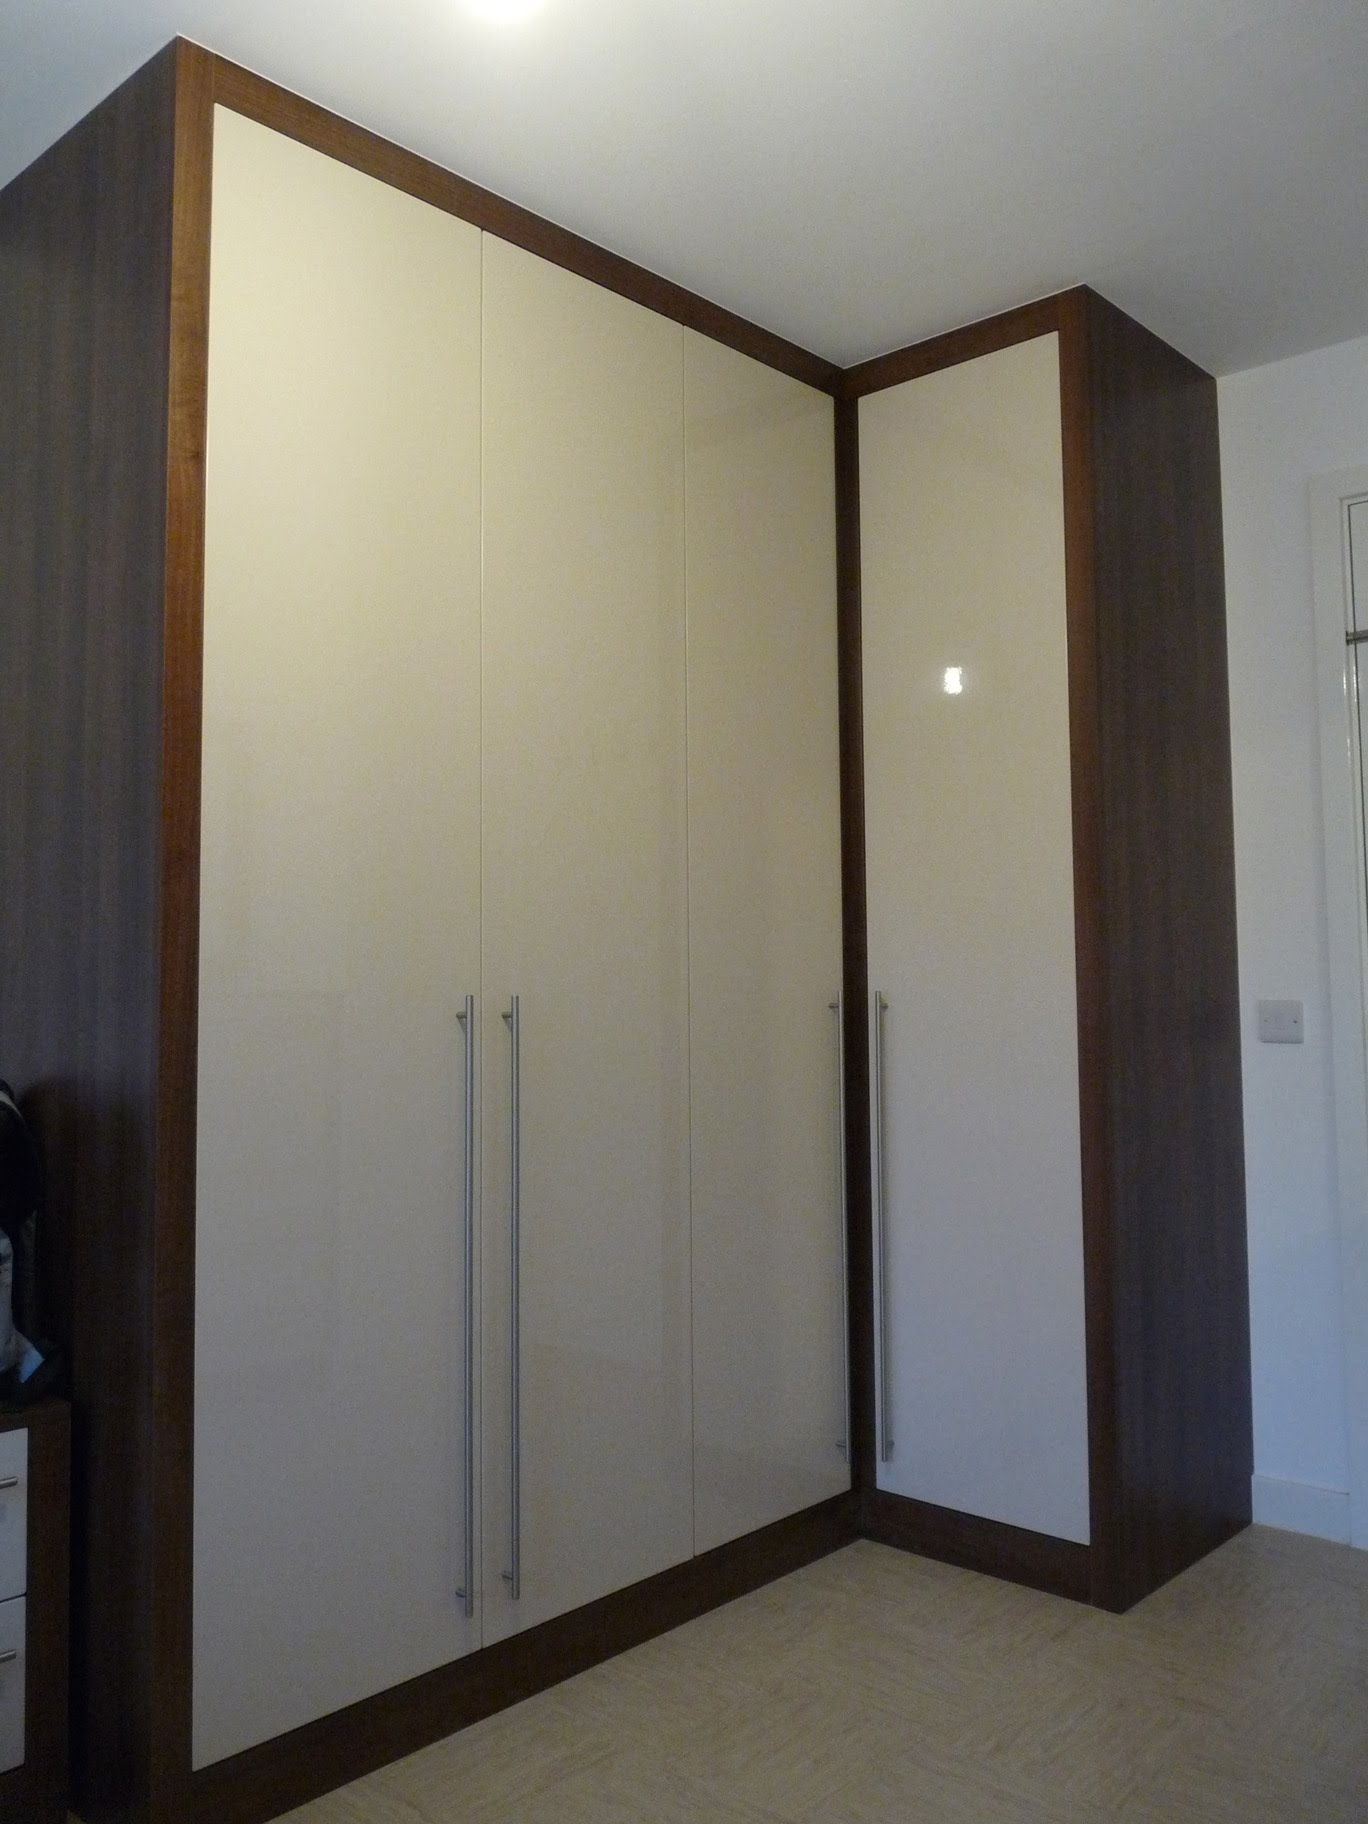 Bespoke Fitted Wardrobes Chunky Frame Dark Walnut Sand Stone Throughout Dark Wardrobes (View 15 of 15)